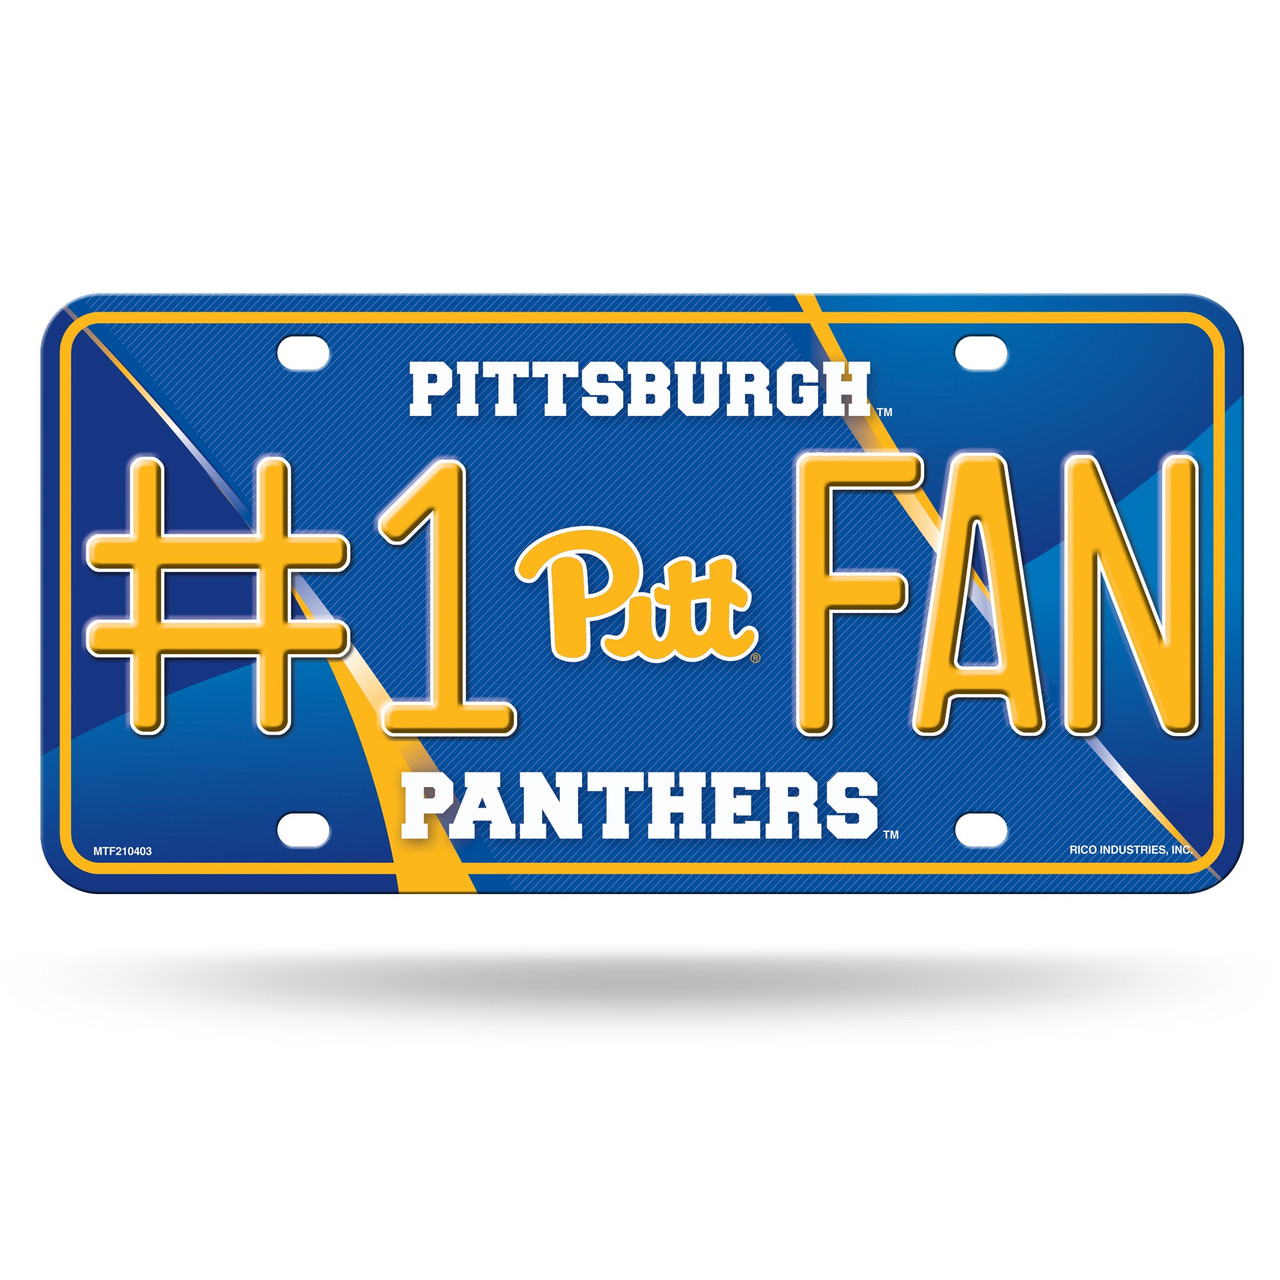 Pittsburgh Panthers License Plate #1 Fan Alternate Design